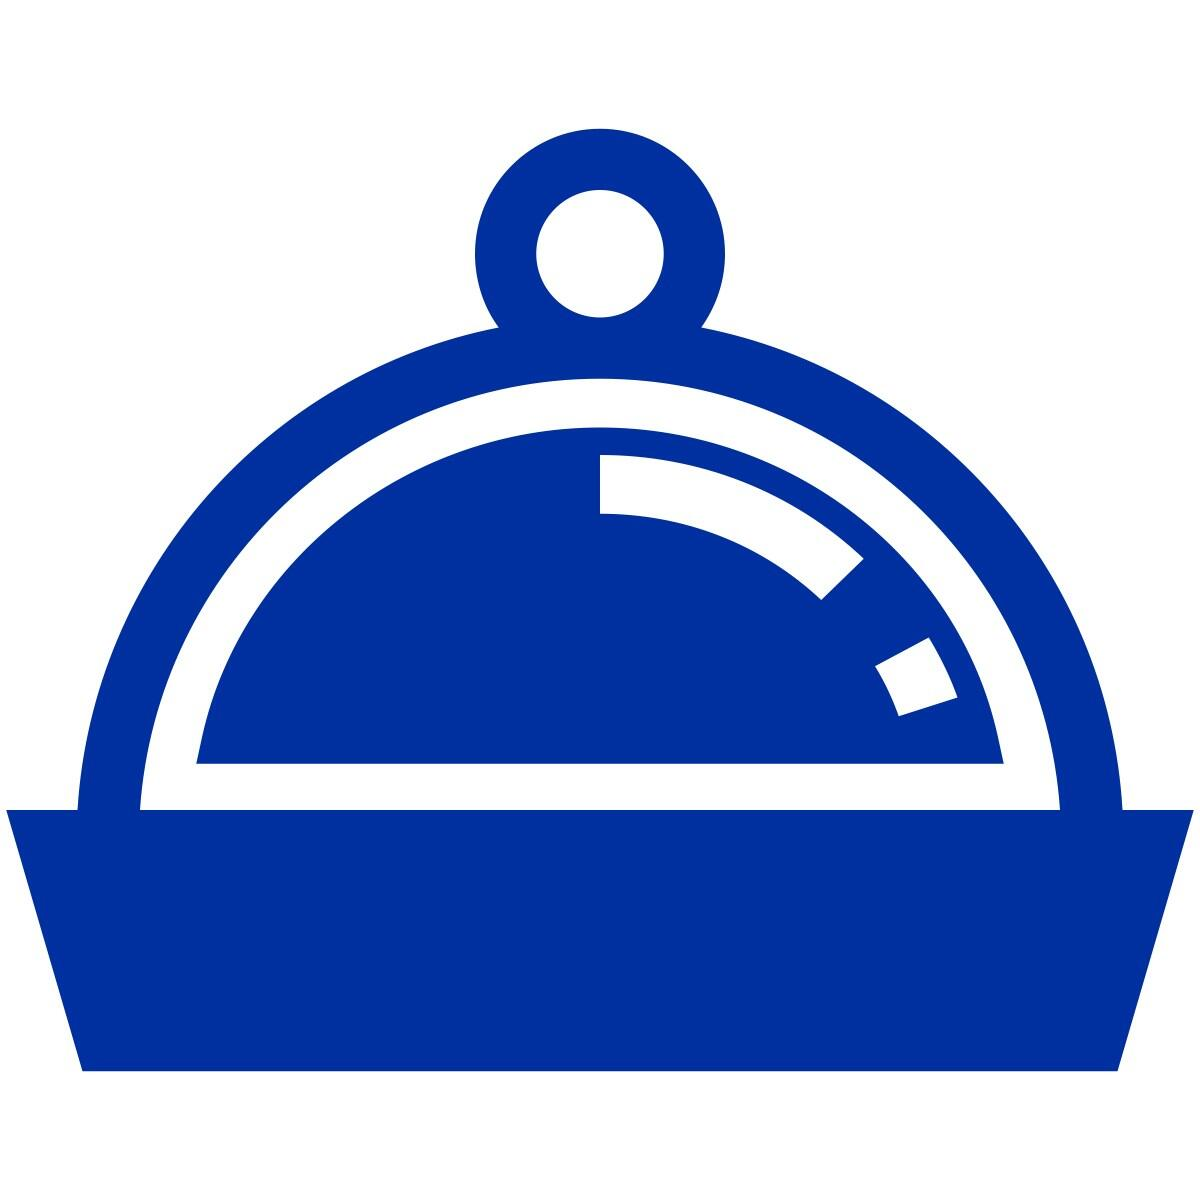 Graphical icon depicting a covered plate